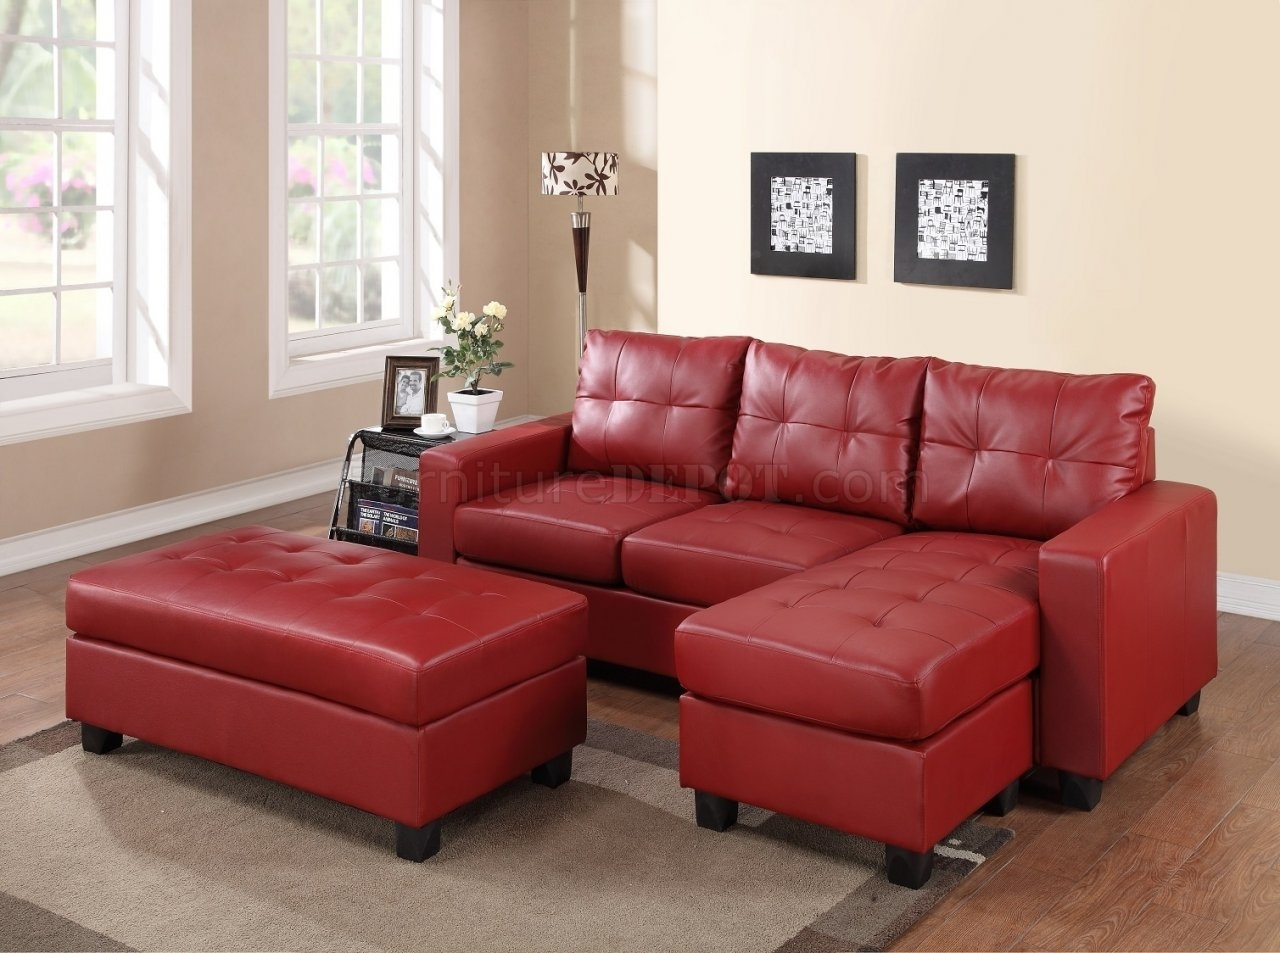 Beautiful Red Leather Sectional Sofa With Chaise Photos For Red Leather Sectionals With Chaise (Image 1 of 10)